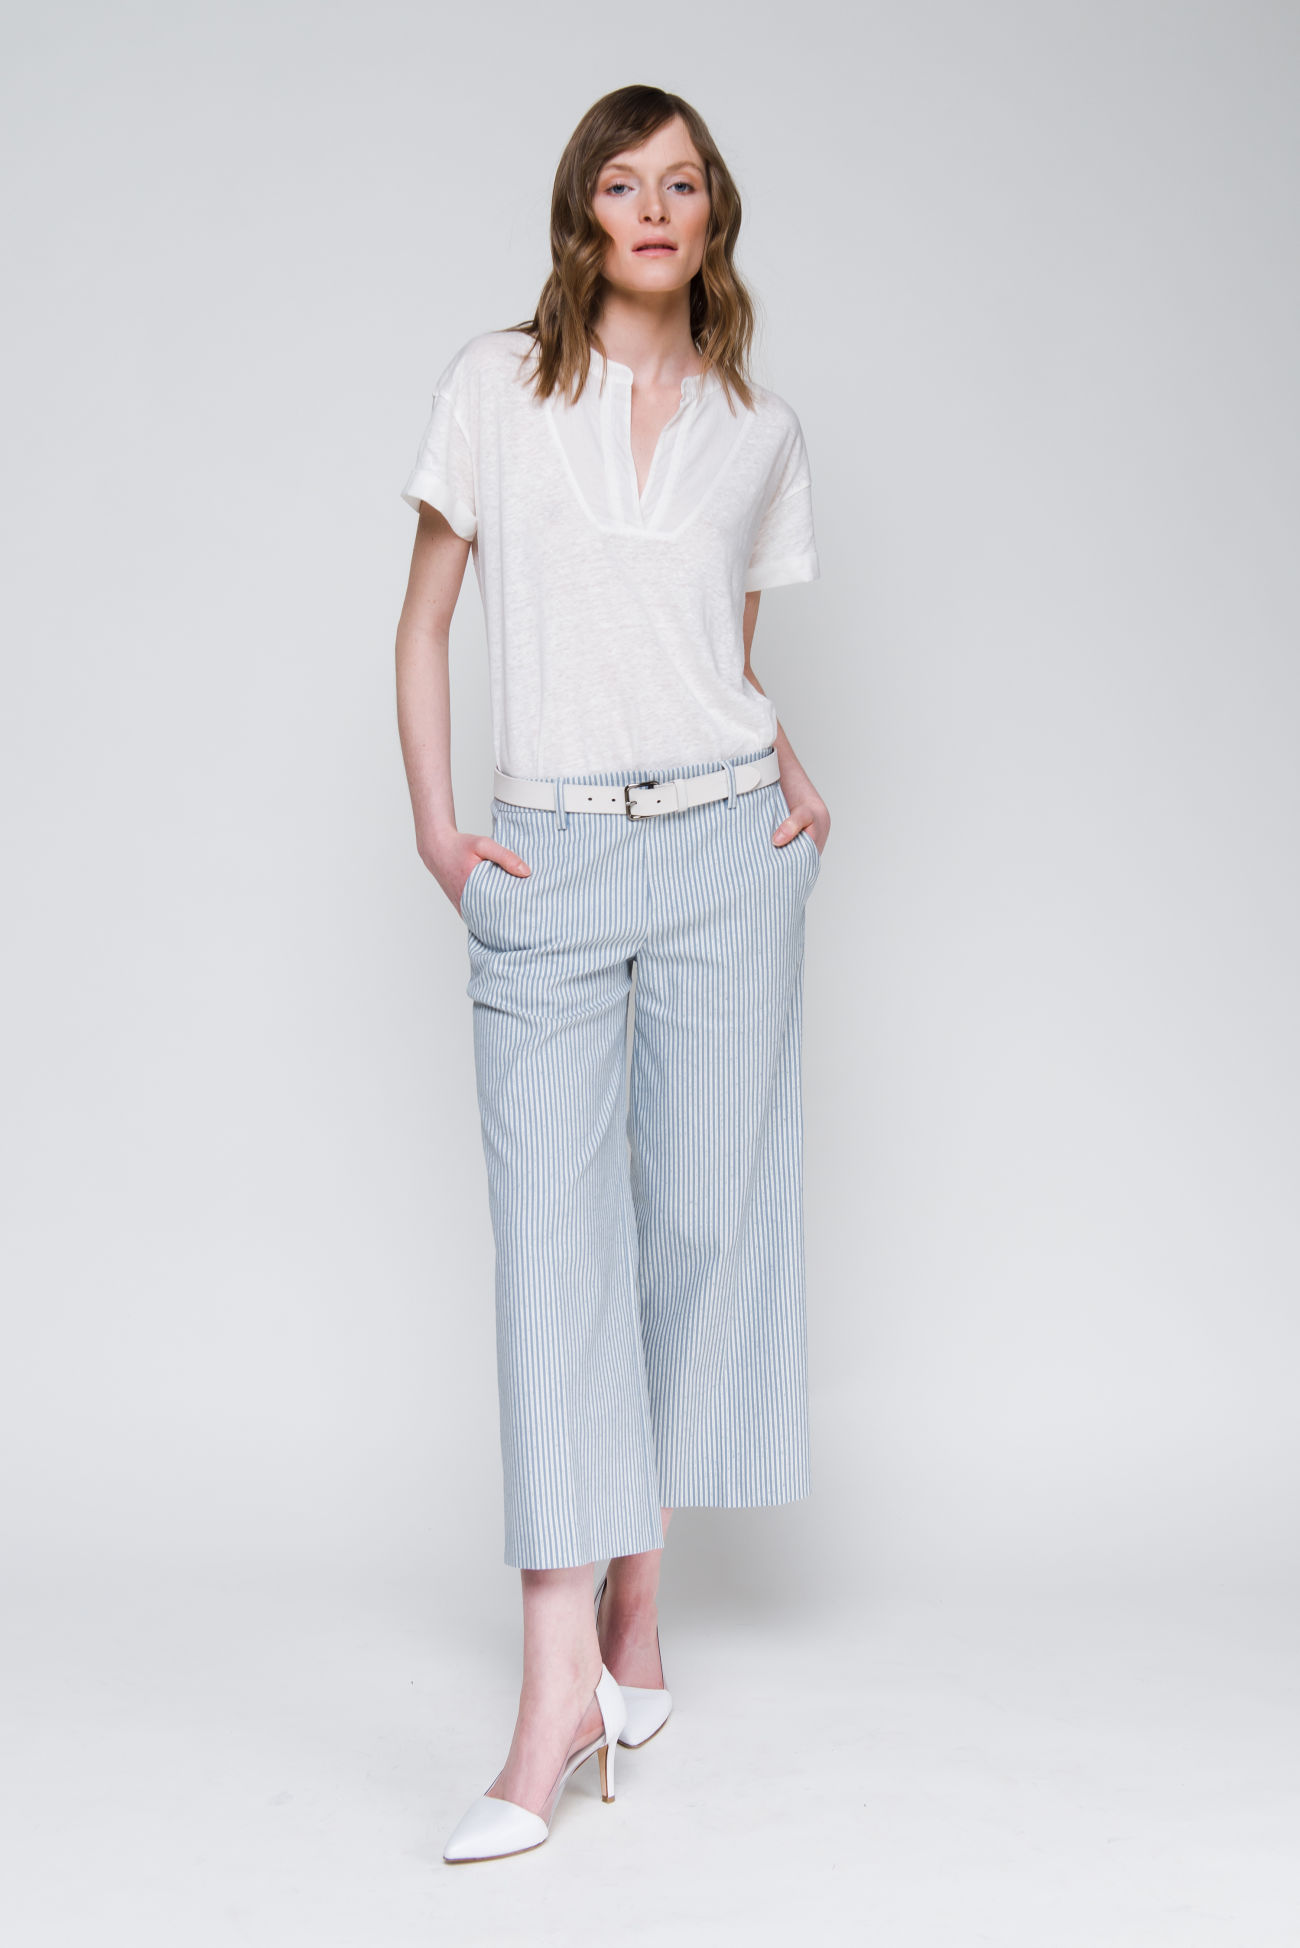 ¾ pants in cotton-mix